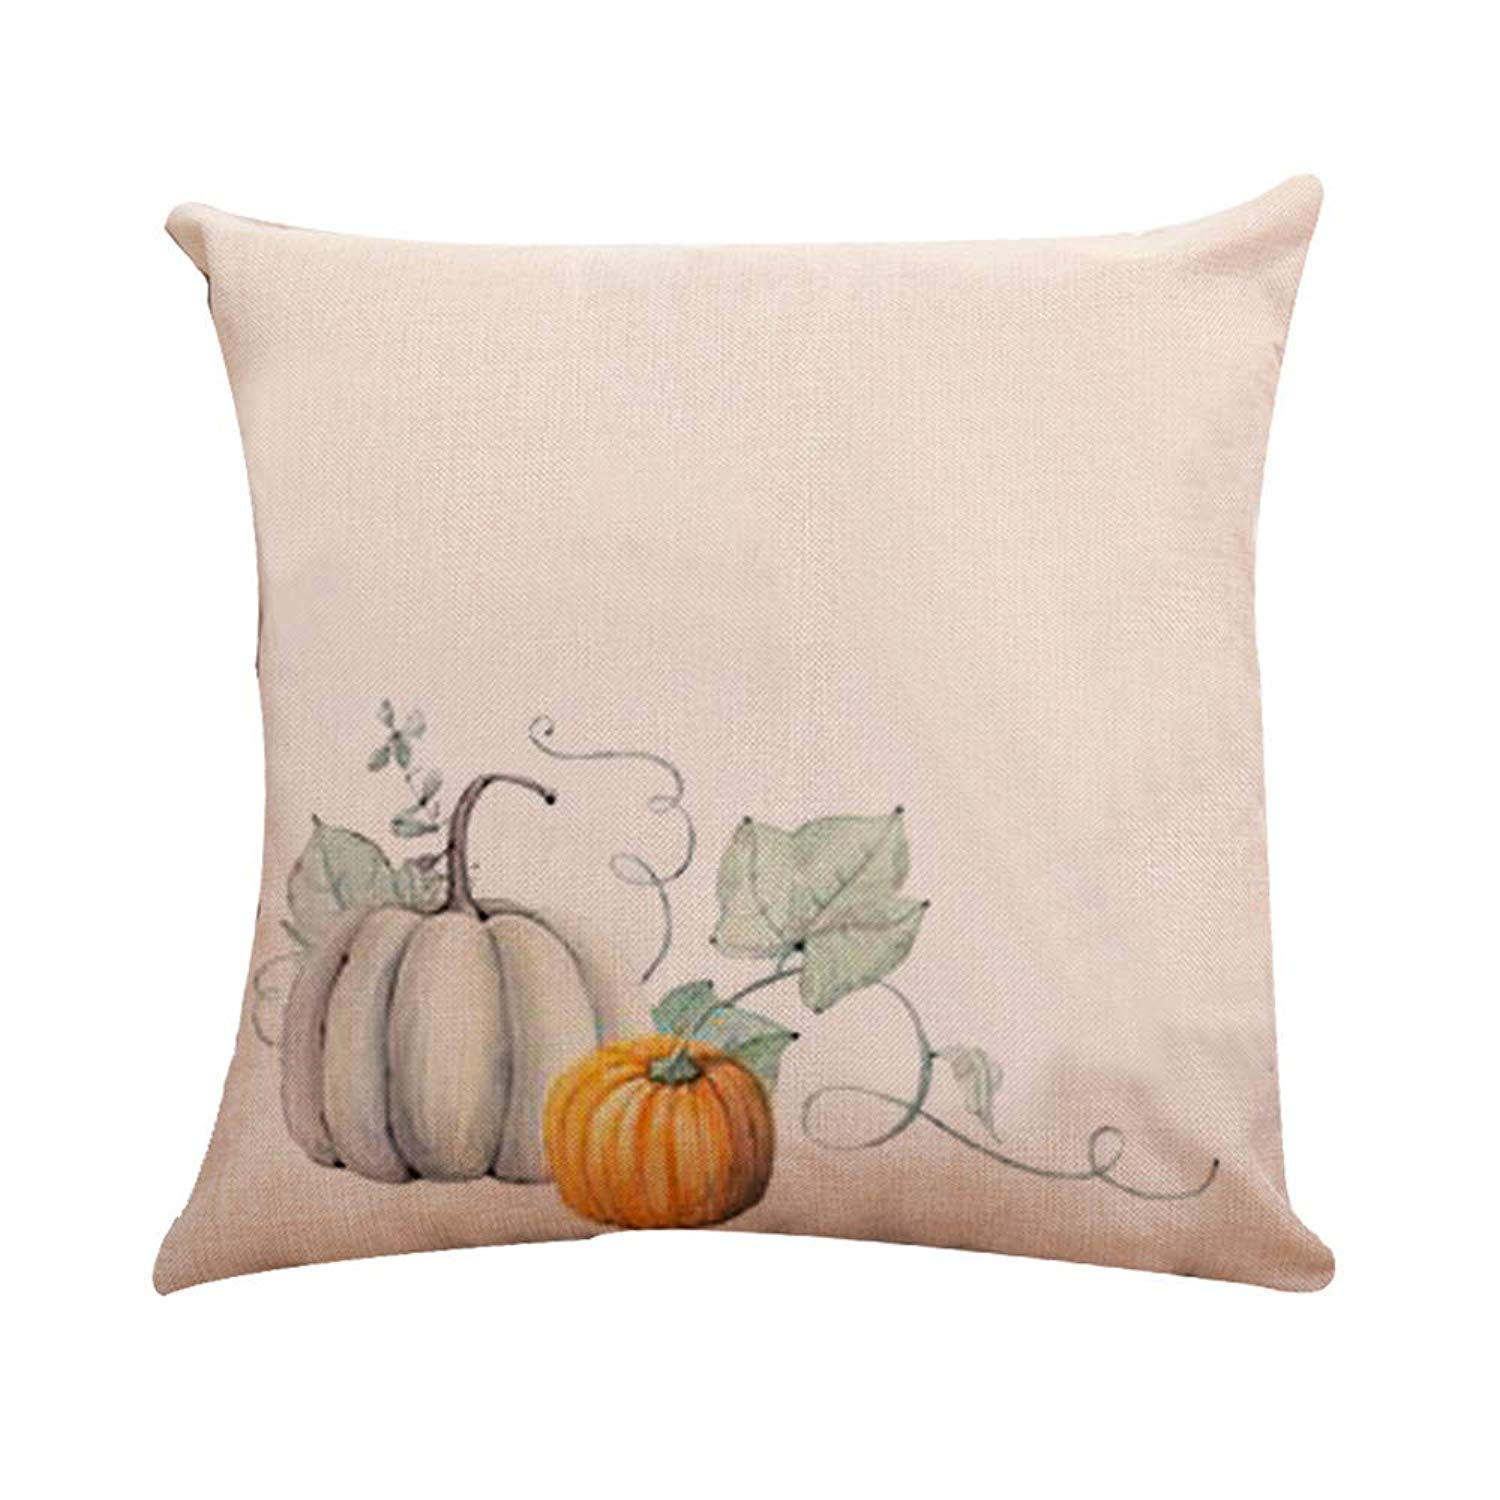 MaxFox Halloween Pumpkin Throw Pillow Cover Flax Pillow Case Cushion for Office Home Room Car Decor